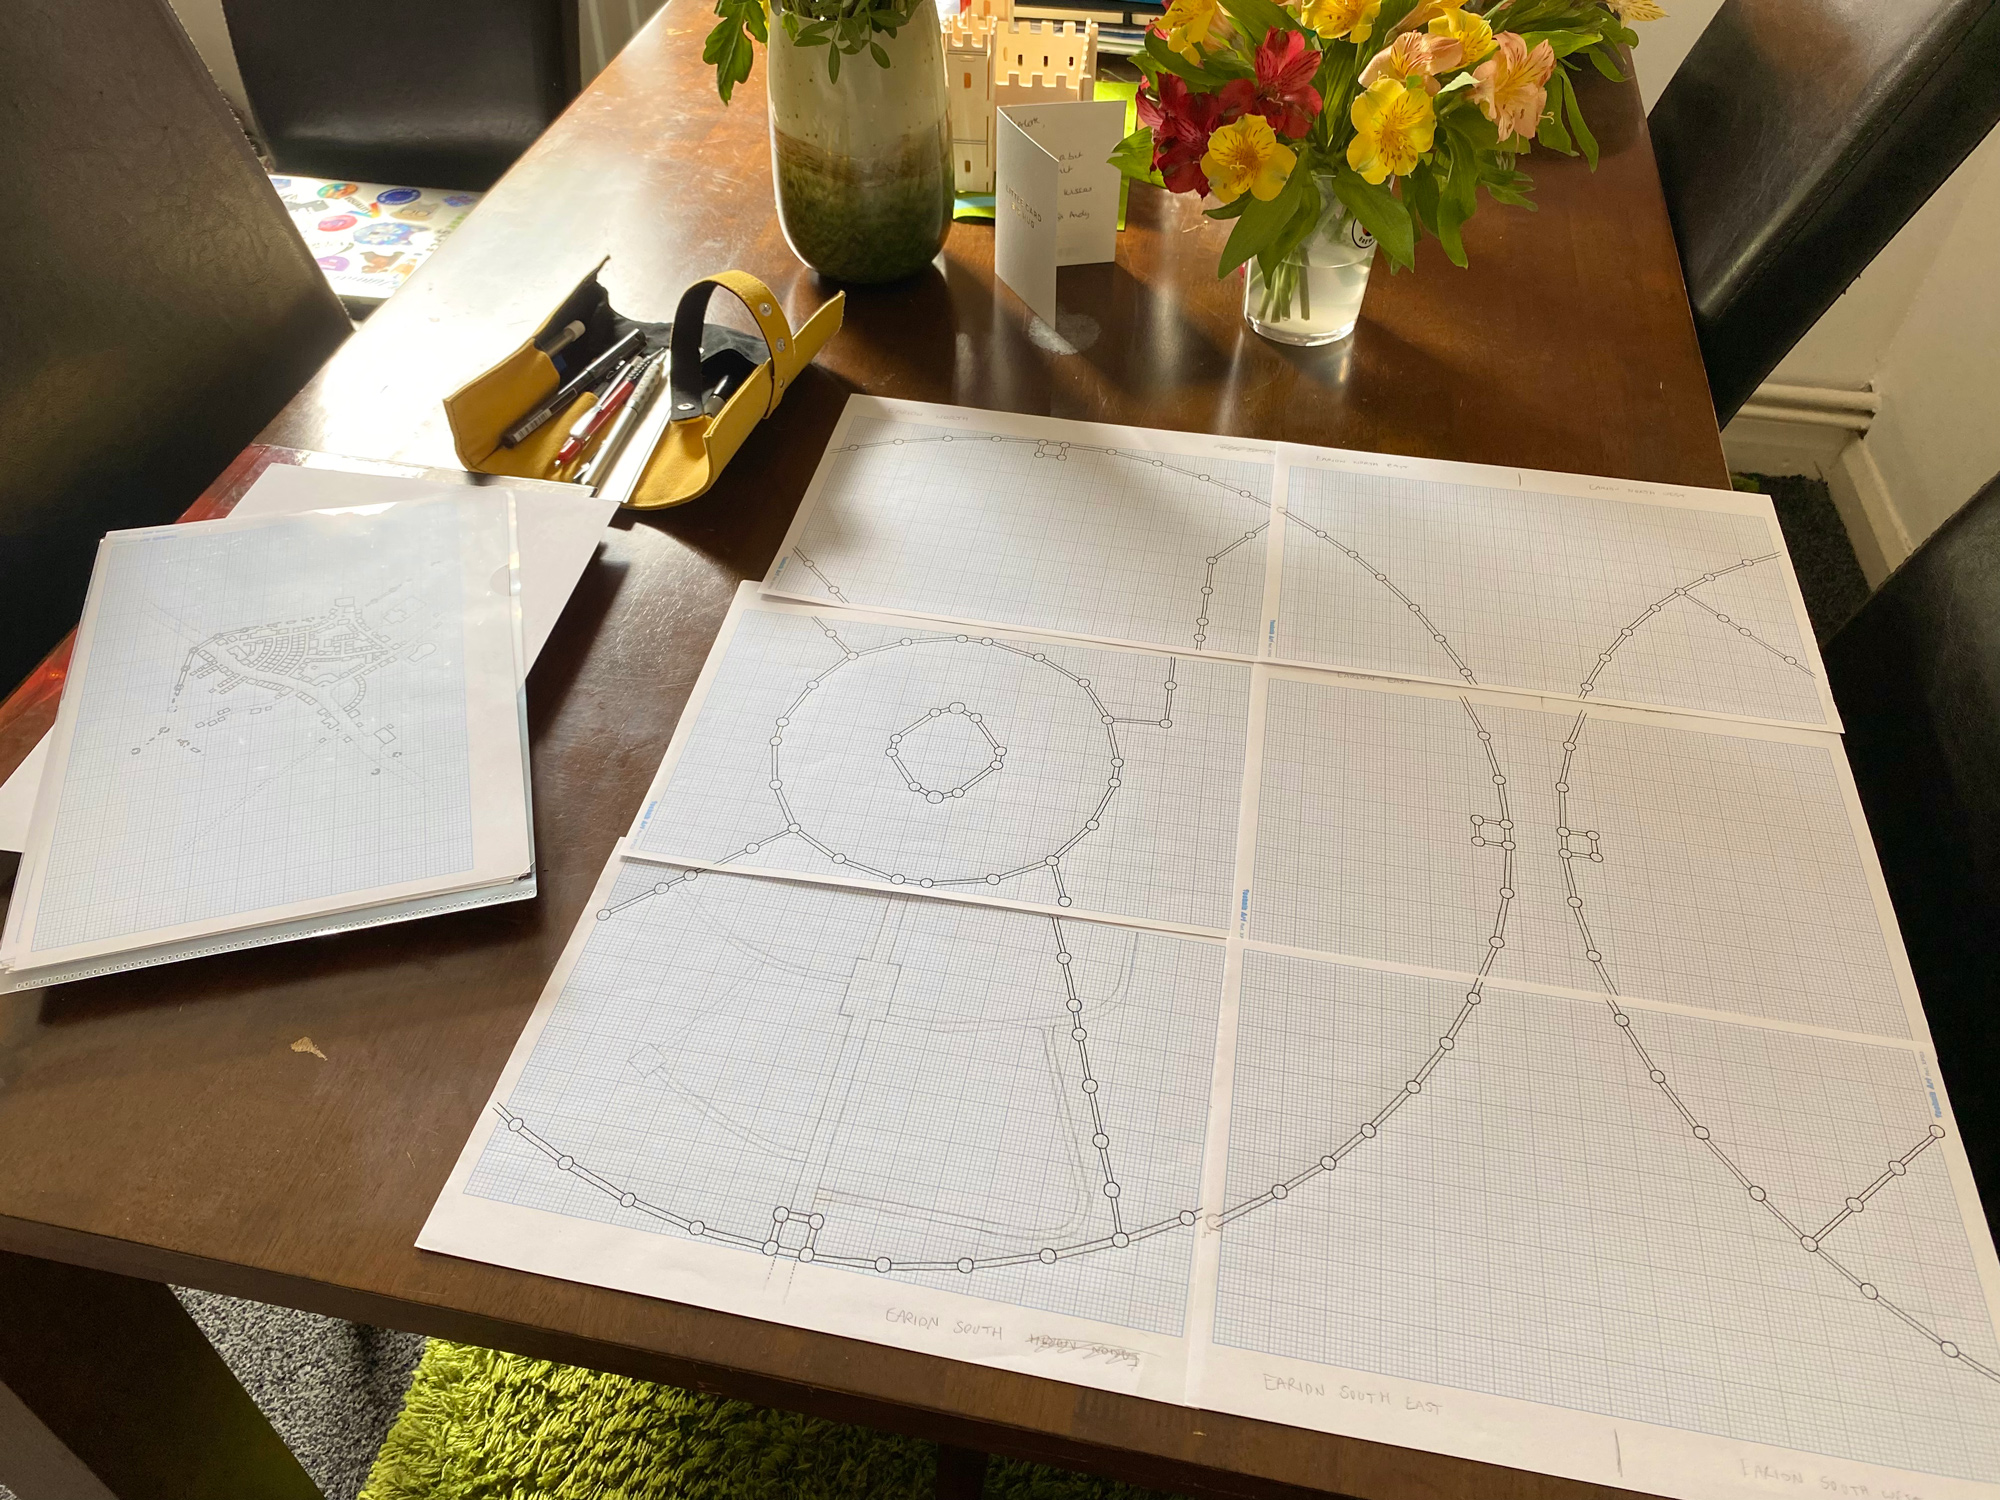 Six sheets of A4 grid paper laid out with city walls drawn in a large circle across all of them.